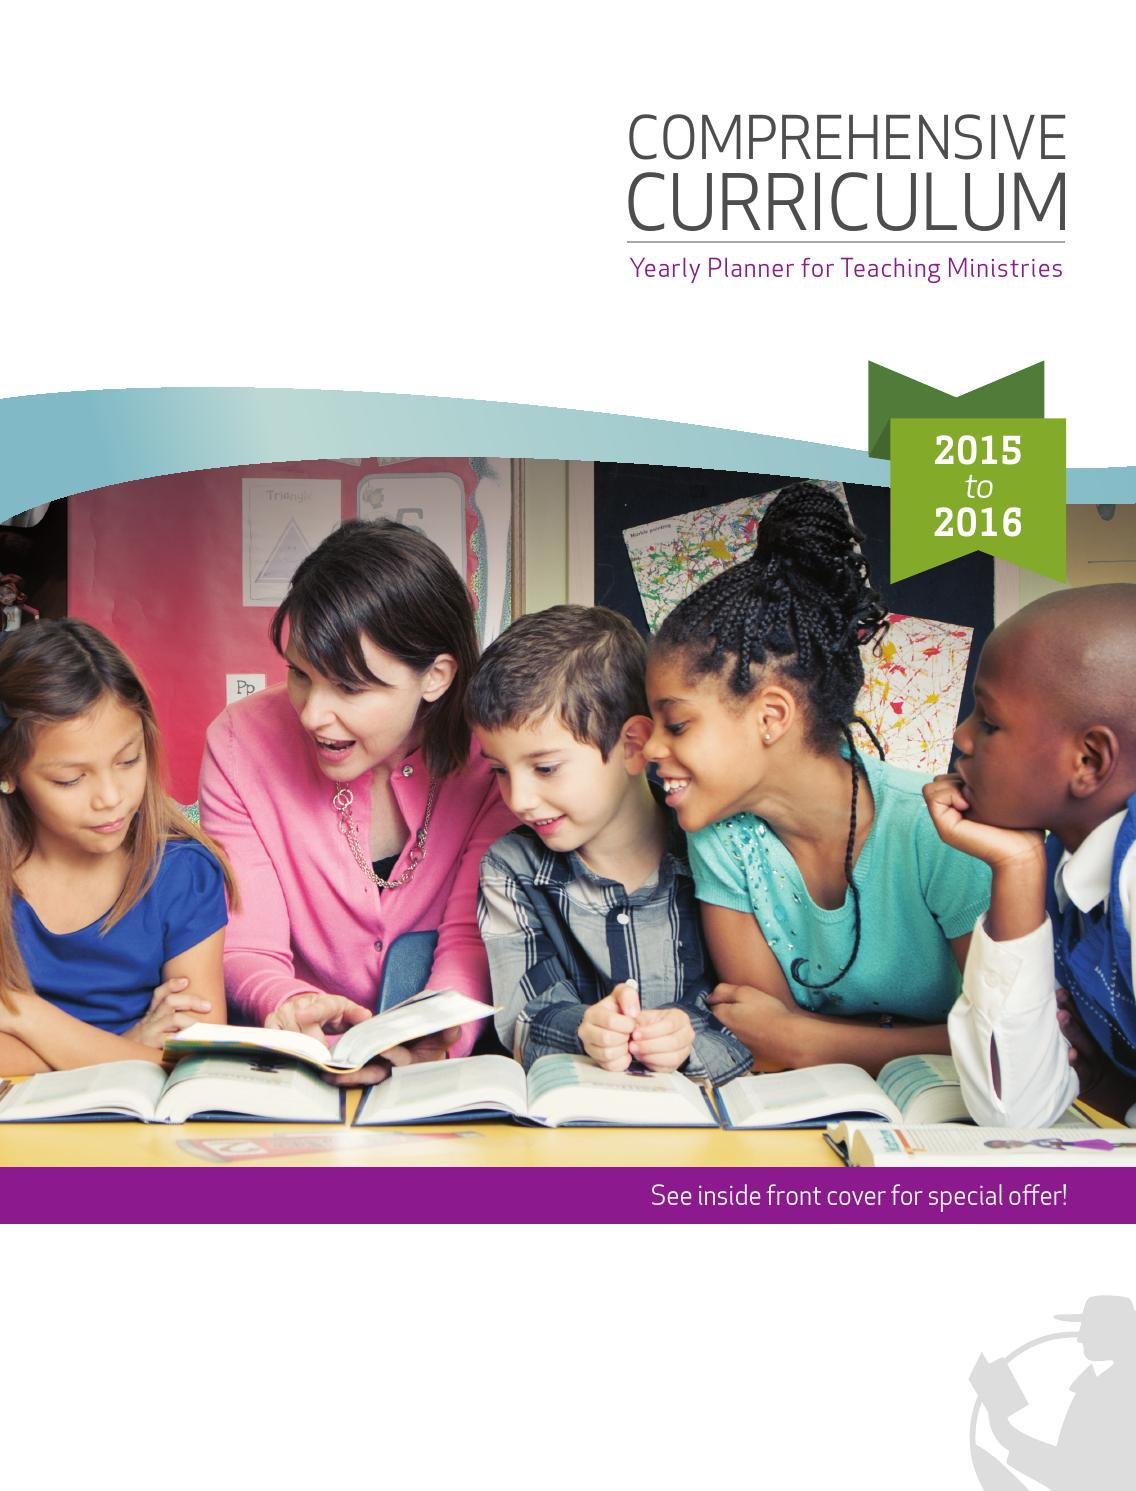 Comprehensive curriculum catalog 2015 by united methodist publishing comprehensive curriculum catalog 2015 by united methodist publishing house cokesbury issuu fandeluxe Gallery